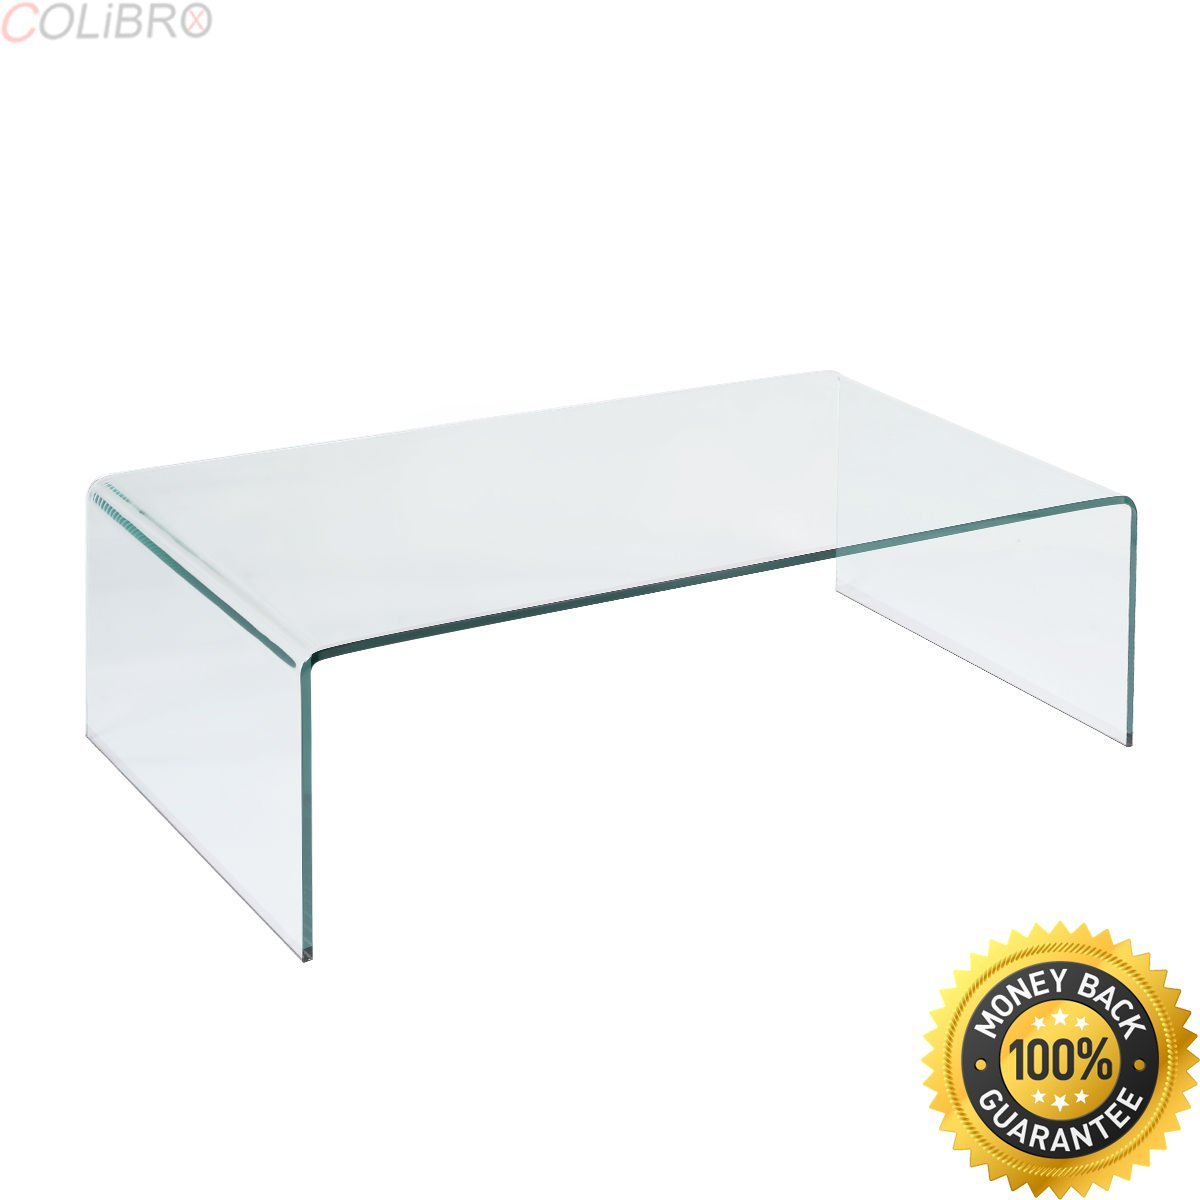 COLIBROX--Tempered Glass Coffee Table Accent Cocktail Side Table Living Room Furniture New. all glass coffee table. square glass coffee table. coffee table glass top amazon.modern glass coffee table.